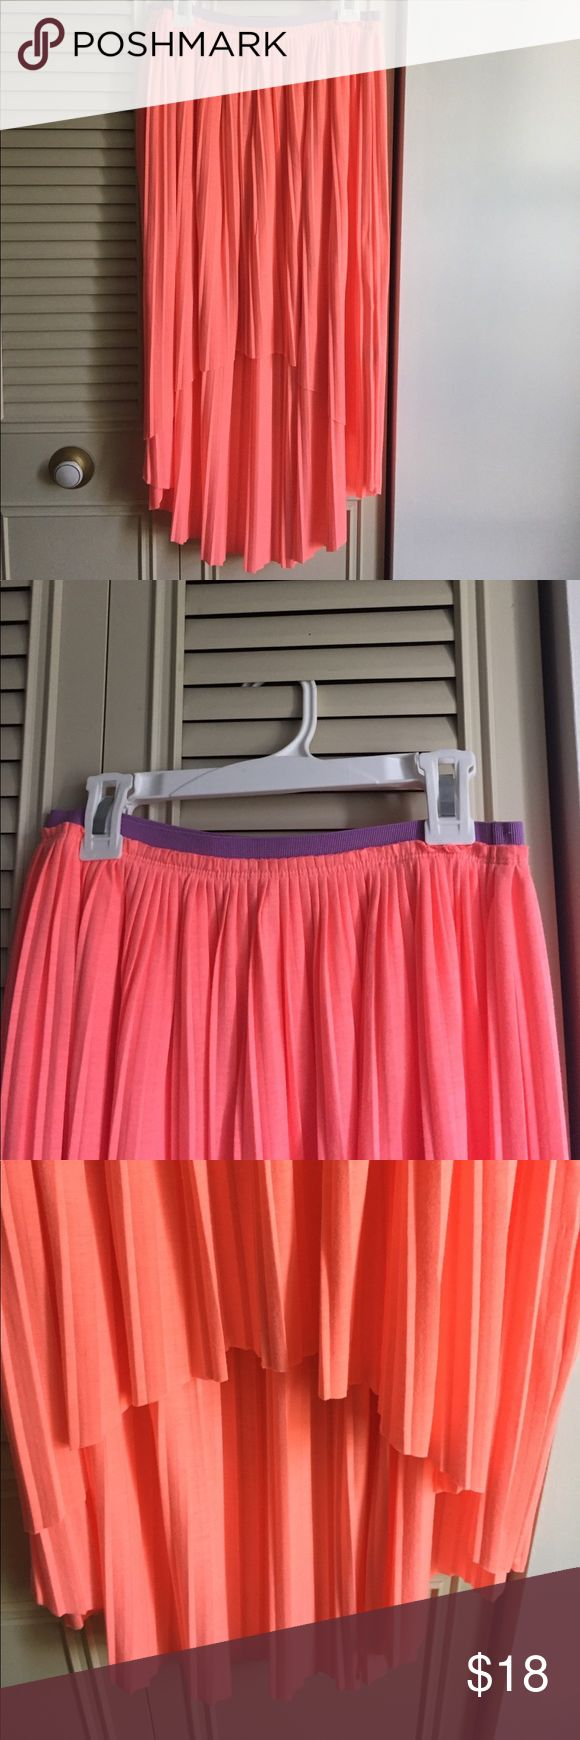 AMERICAN EAGLE HIGH LOW SKIRT This is a vibrant coral high low skirt from American Eagle. It is an extra small and has a stretchy elastic band. It features a muted purple elastic band at the top to contrast the vibrancy of the coral. It looks very beautiful on and it's perfect for the spring! American Eagle Outfitters Skirts High Low